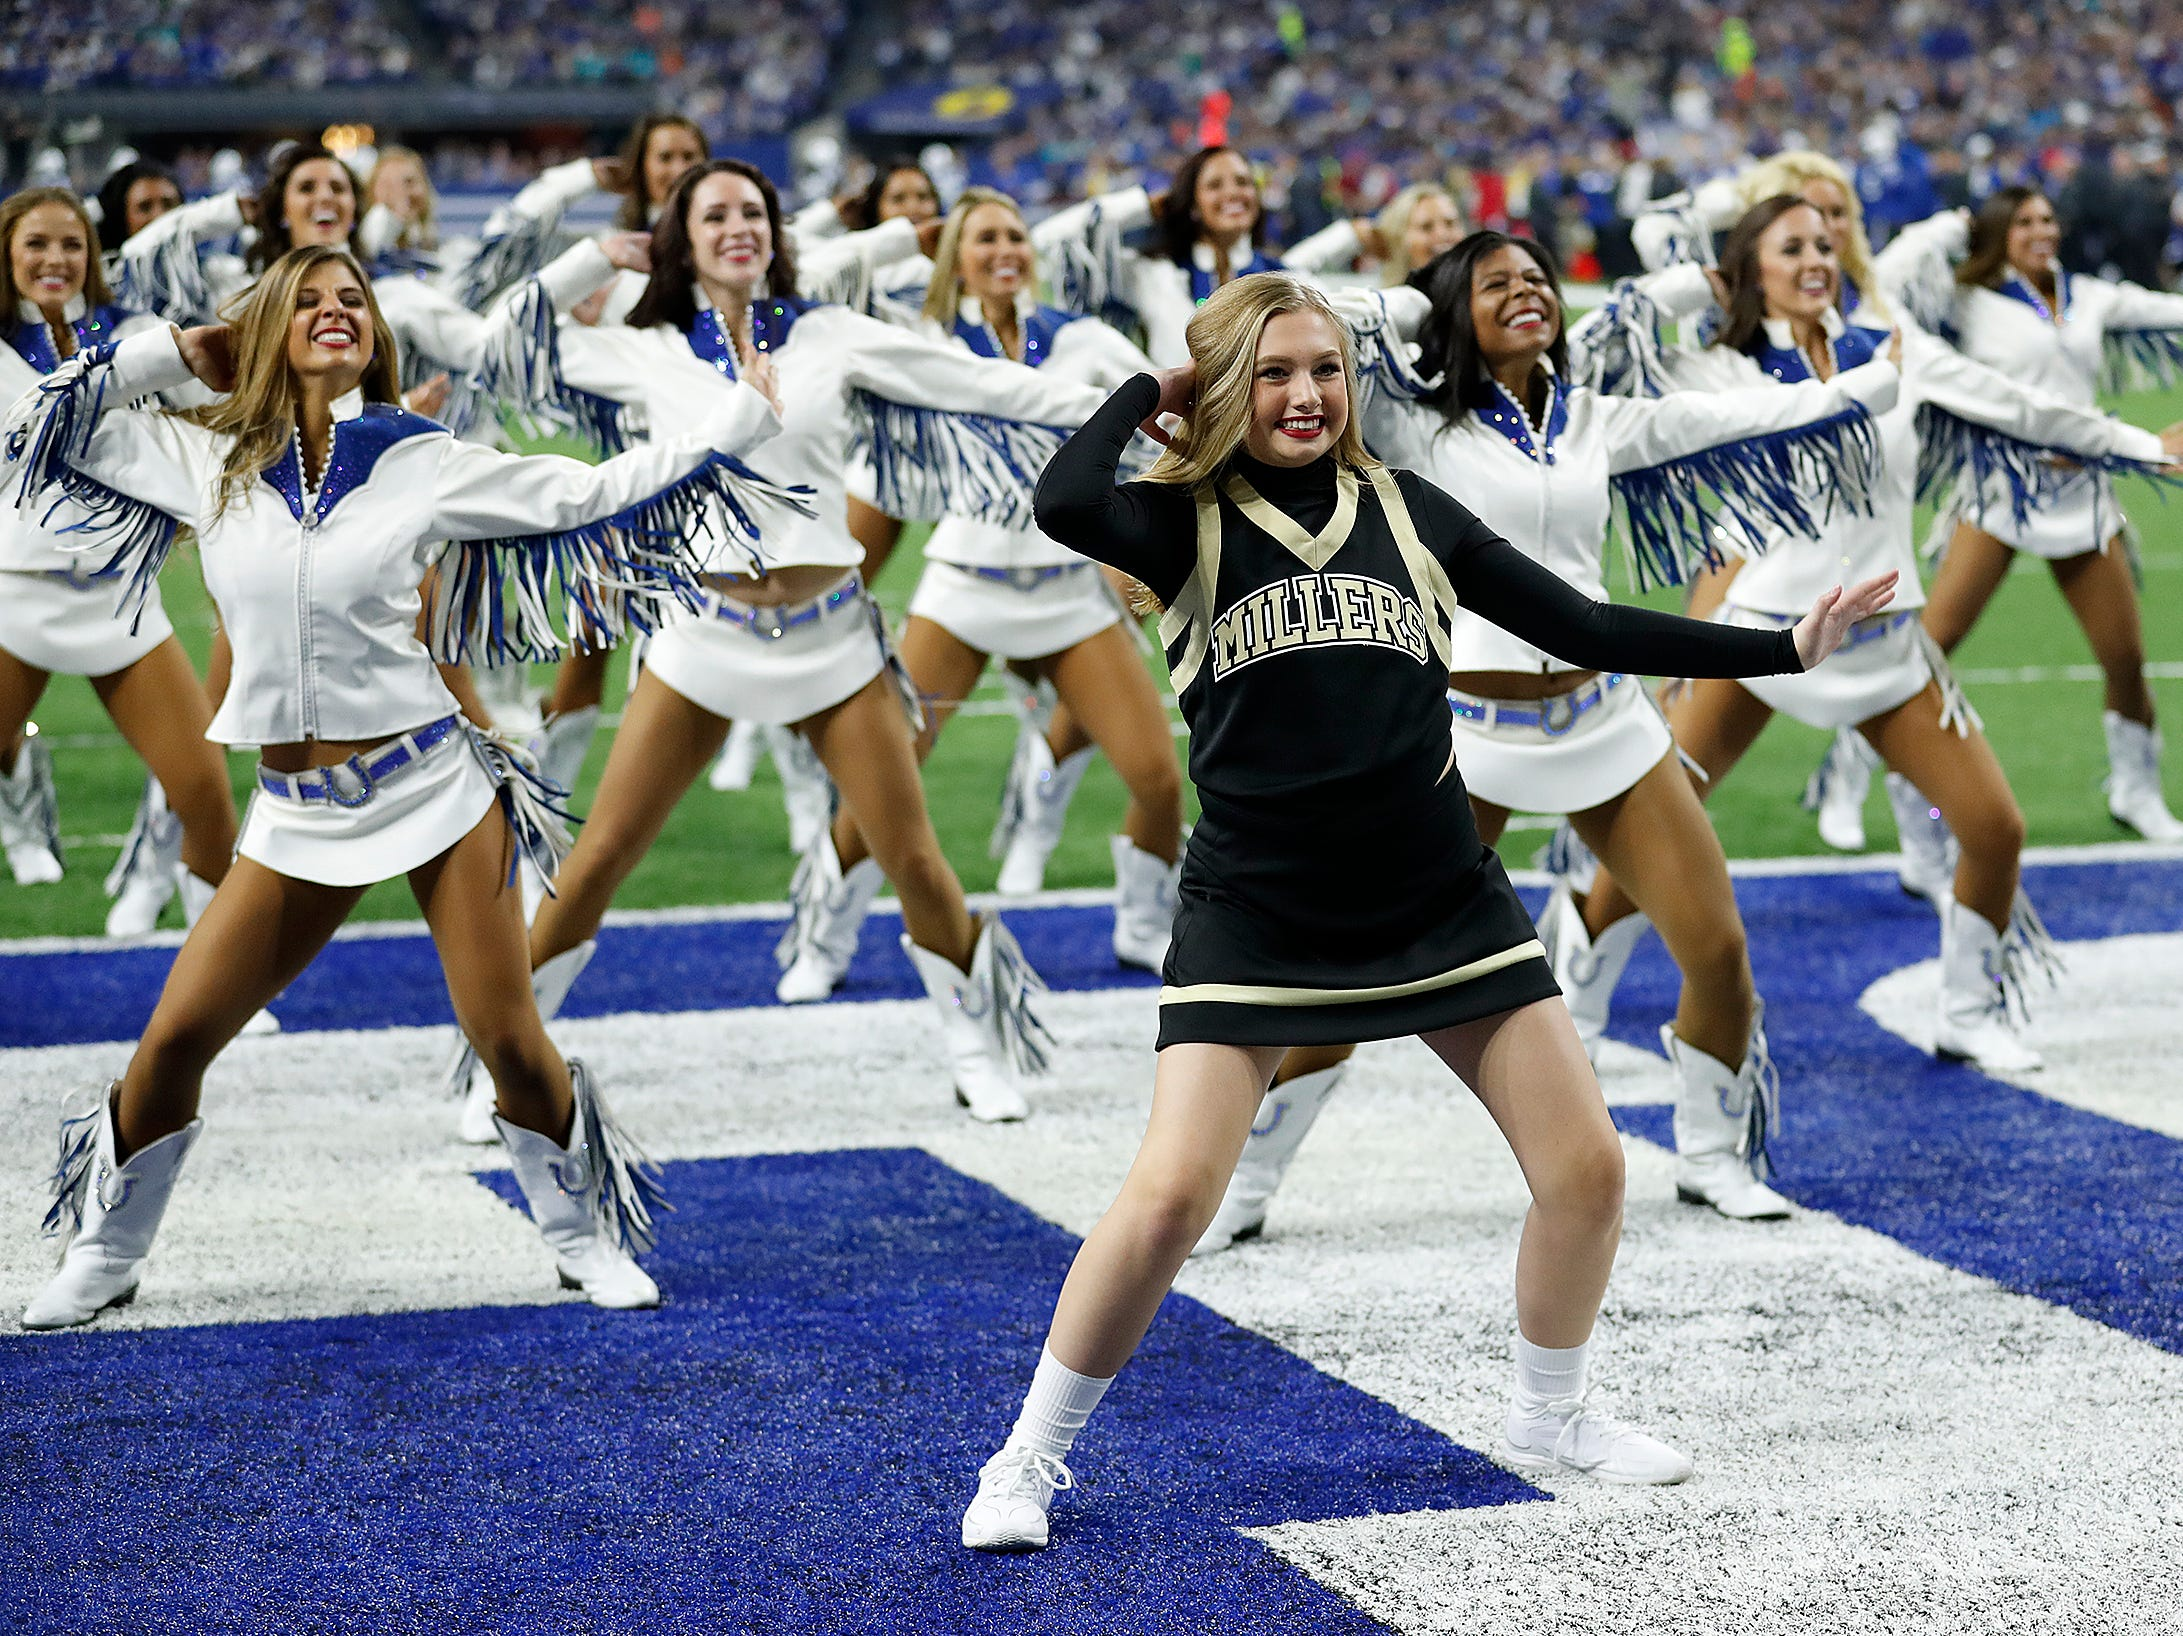 Ella Whisler, Noblesville West Middle Schooler, dances with the Indianapolis Colts cheerleaders in the first half of their game at Lucas Oil Stadium on Sunday, Nov. 25, 2018.